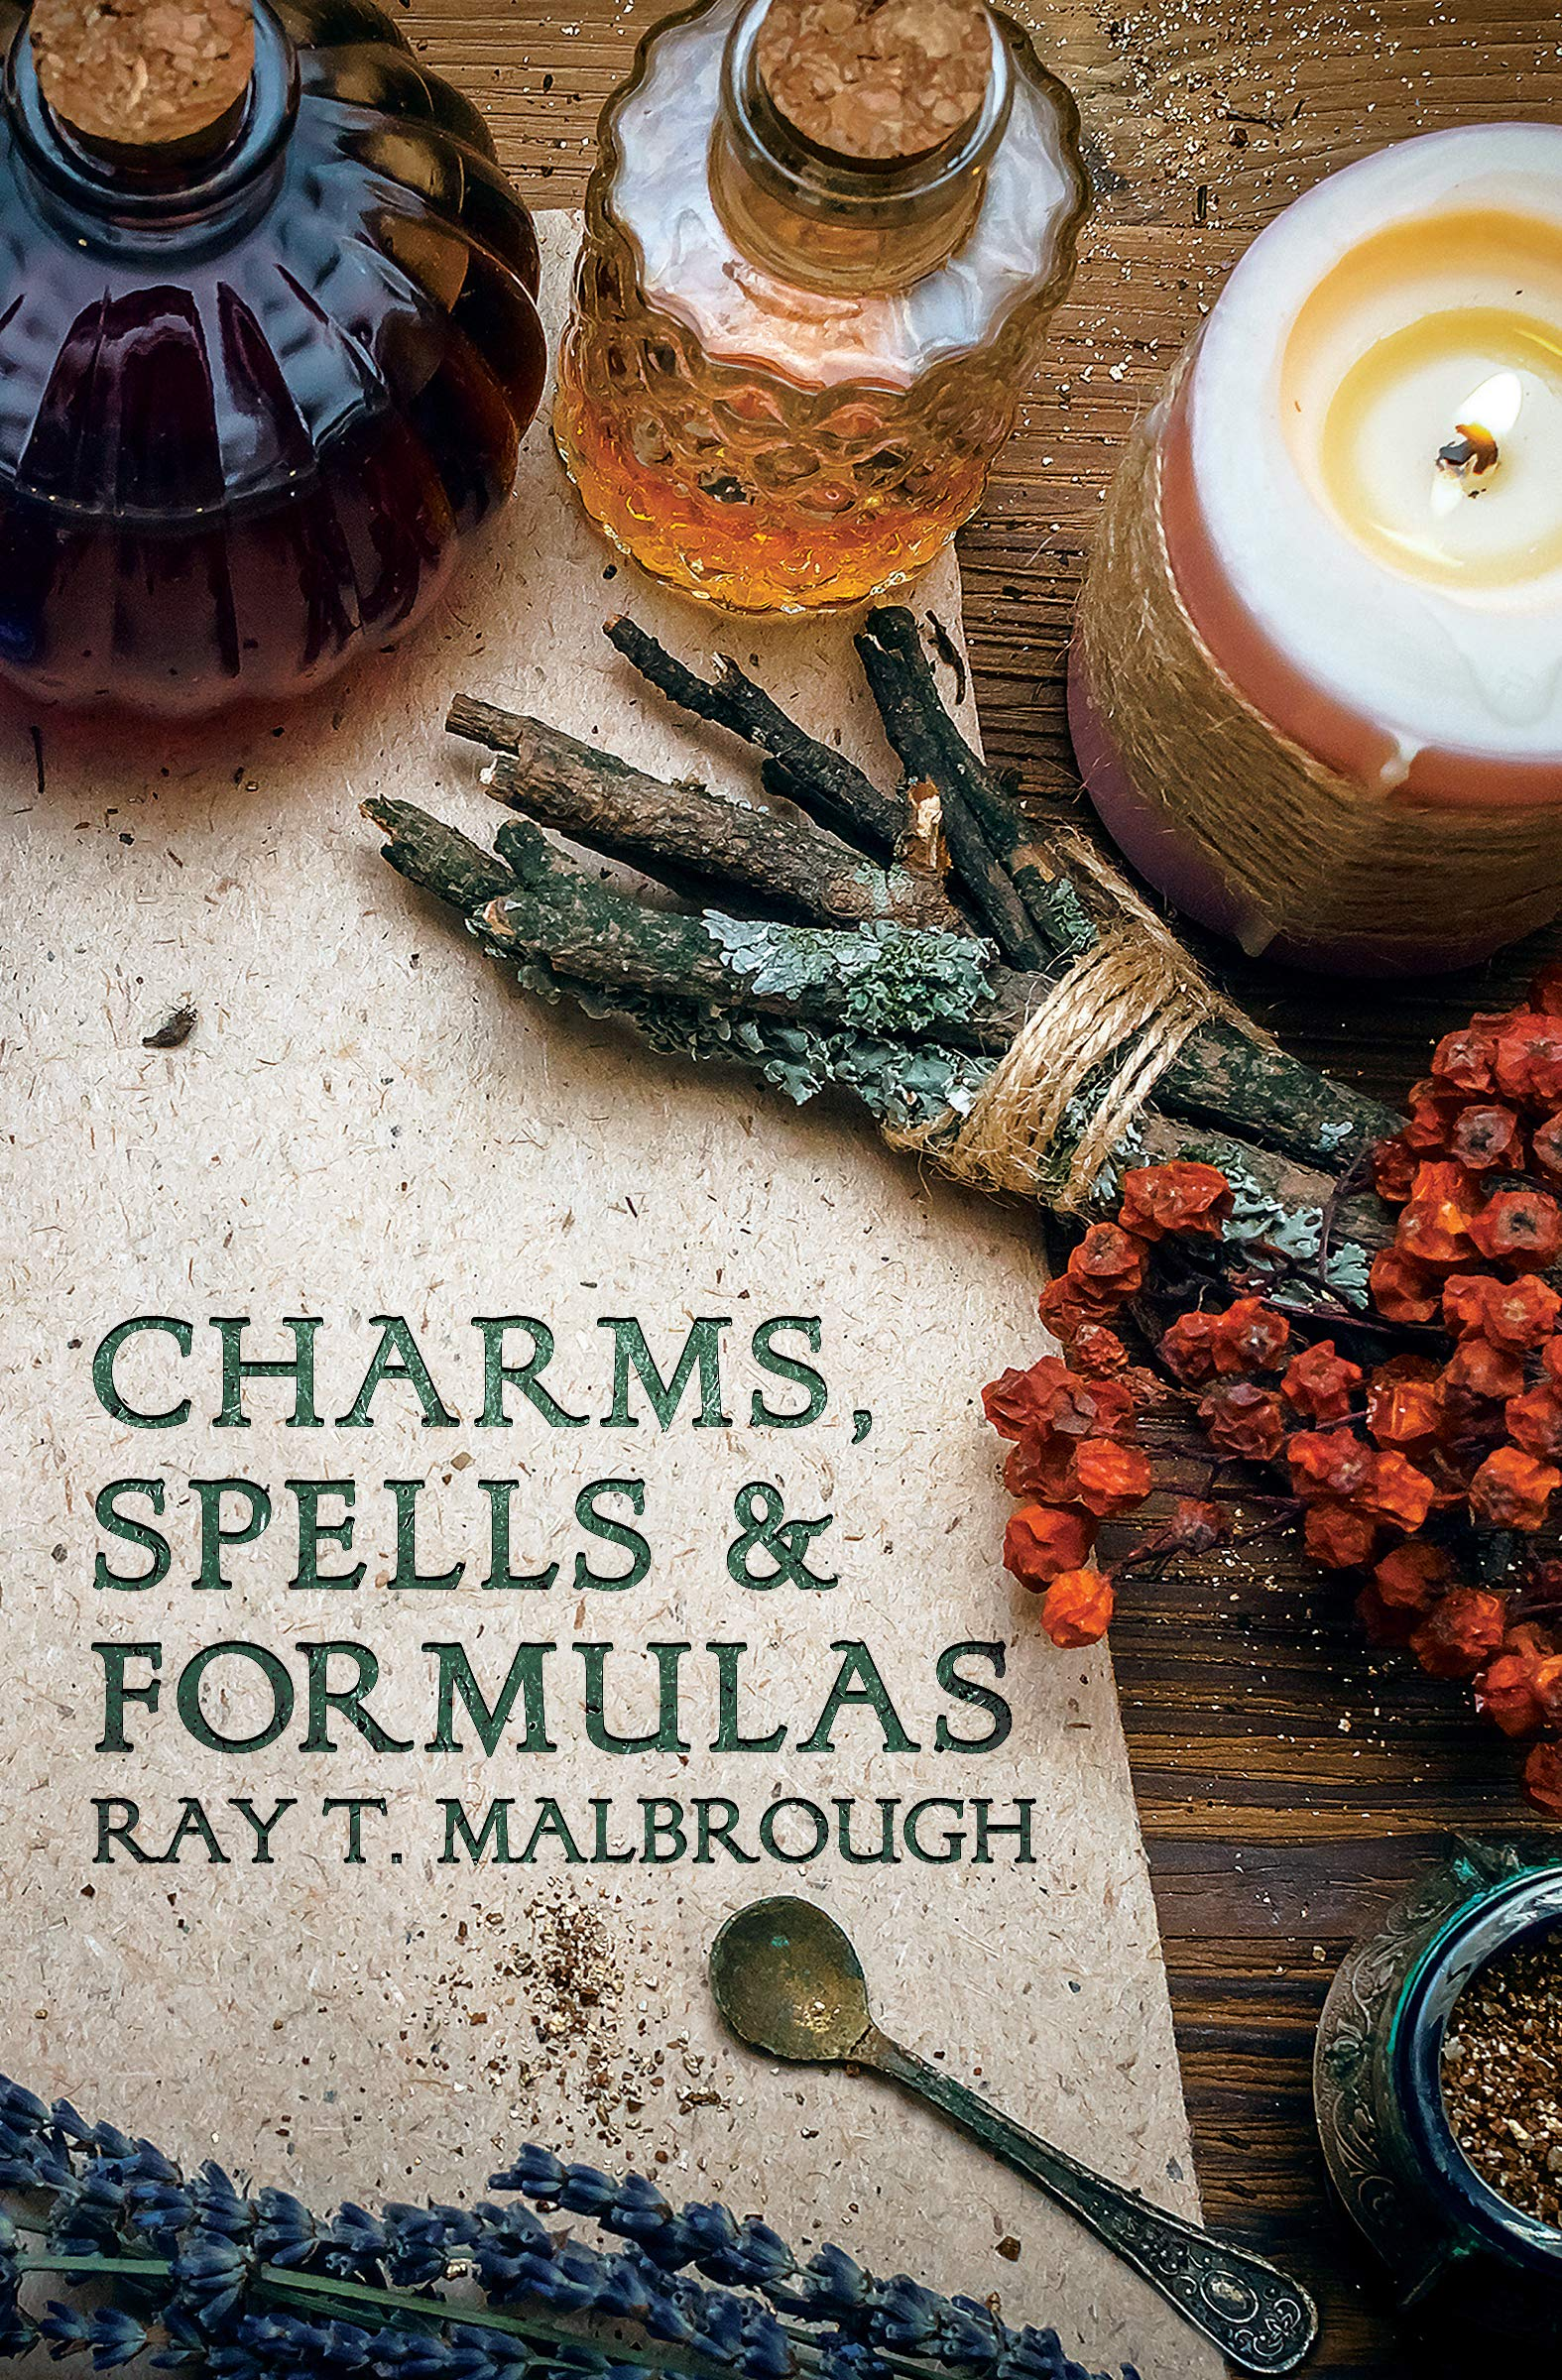 Charms, Spells & Formulas by Malbrough, Ray